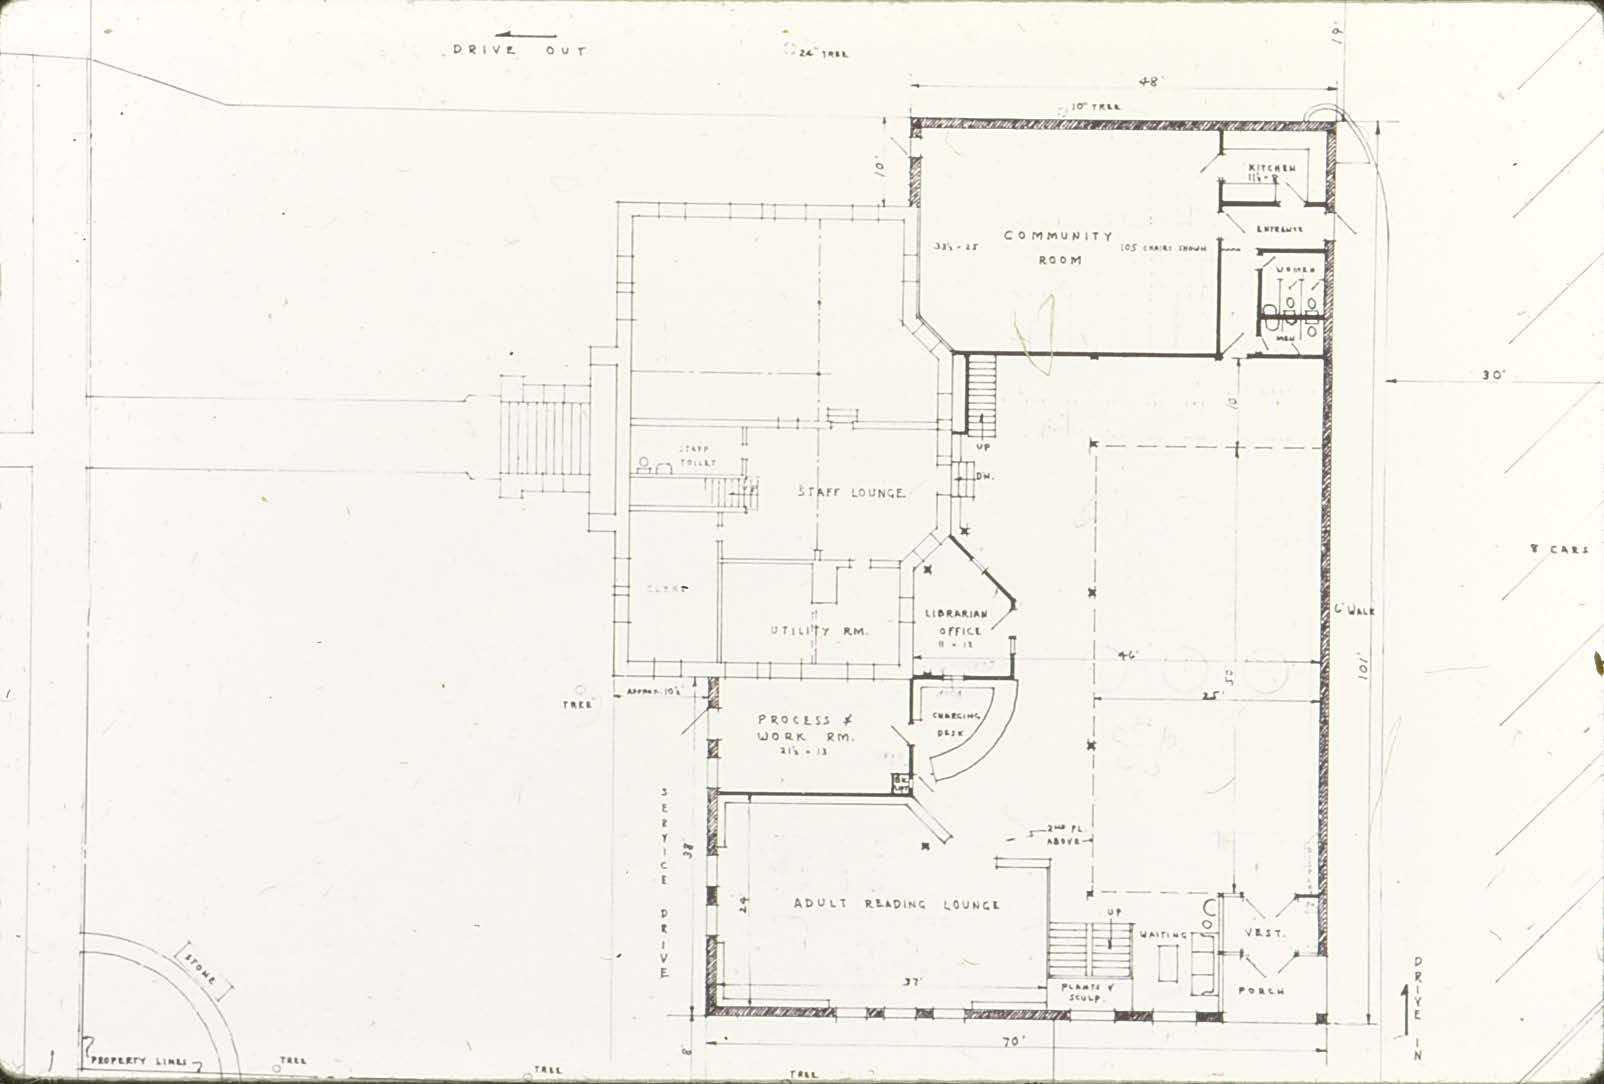 1974 Library slides- Blueprints for the Addition